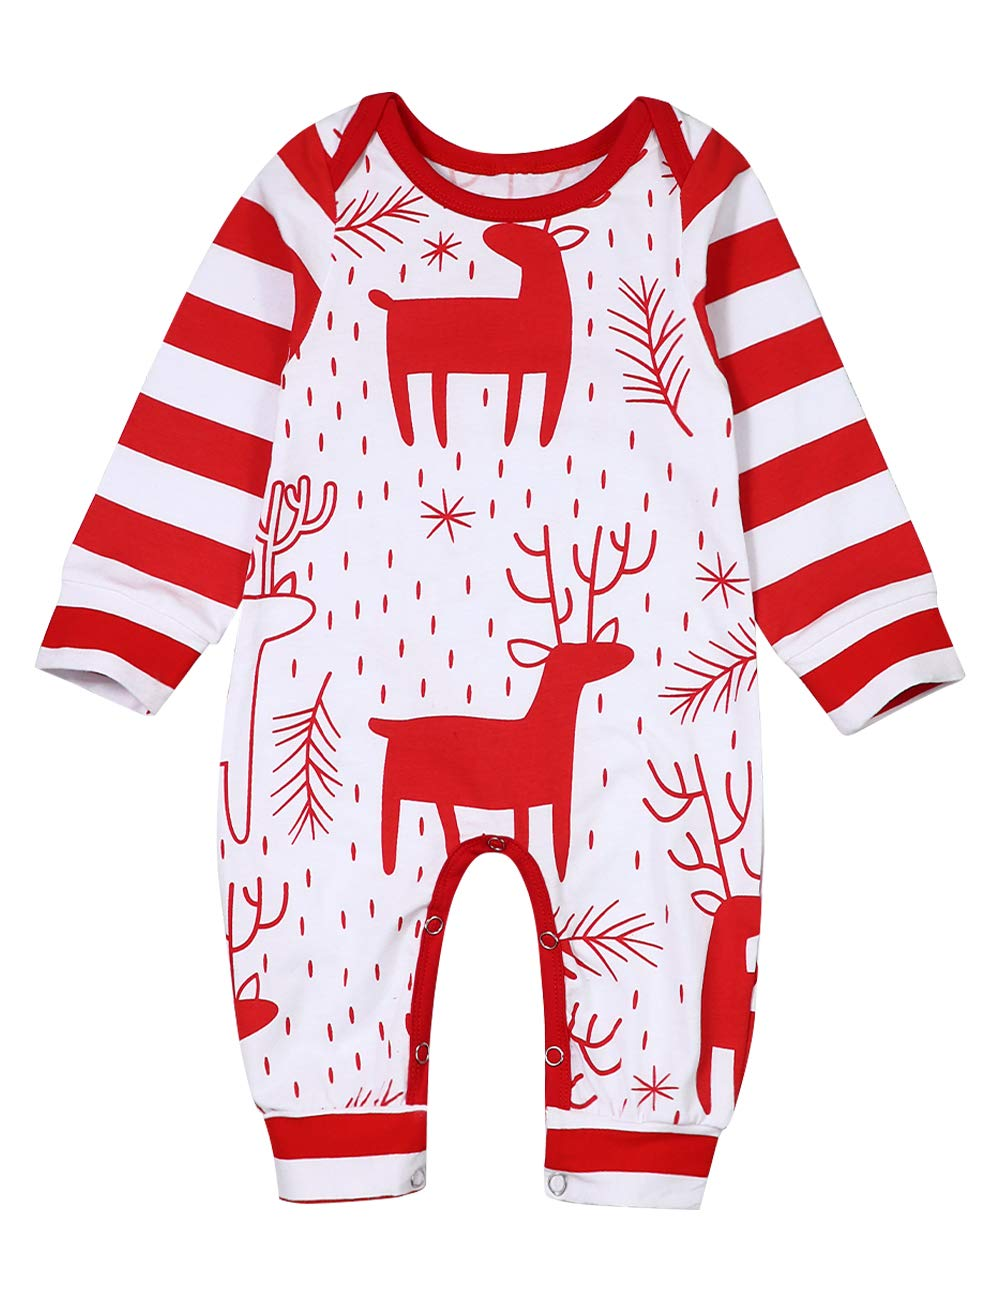 My First Christmas Newborn Baby Boys Girls Clothes Christmas Tree and Deer Romper Jumpsuit with Hat Outfit Set